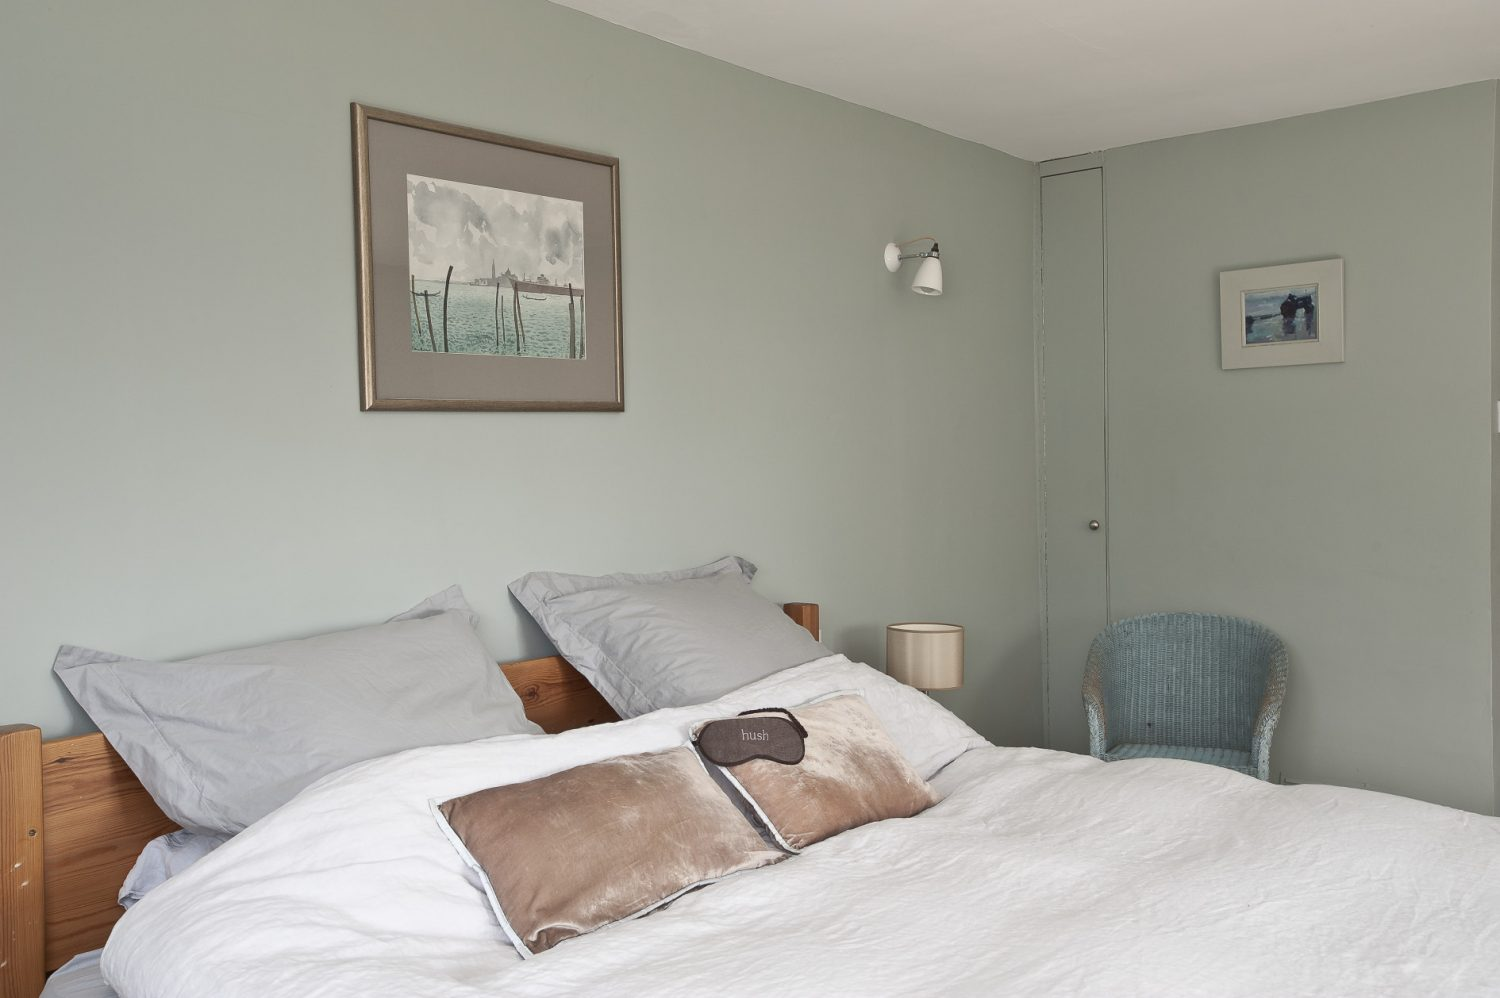 In the master bedroom the pride of place over the bed is given to a lovely sketch of Venice by artist and former Conservative MP Brian Batsford which Alice bought at auction for £25